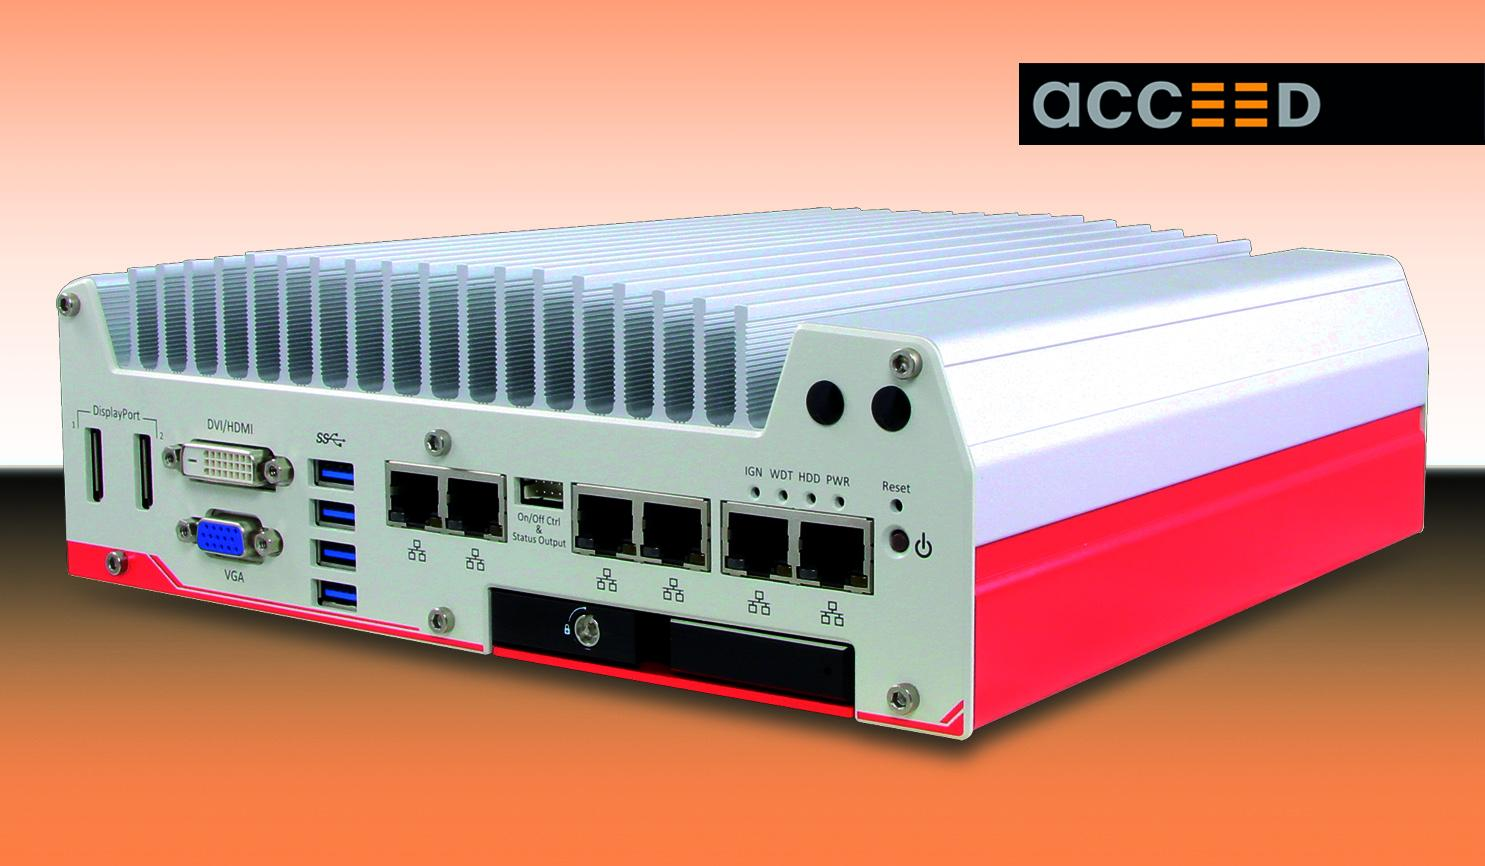 The new, flat Nuvo-5000LP from Acceed